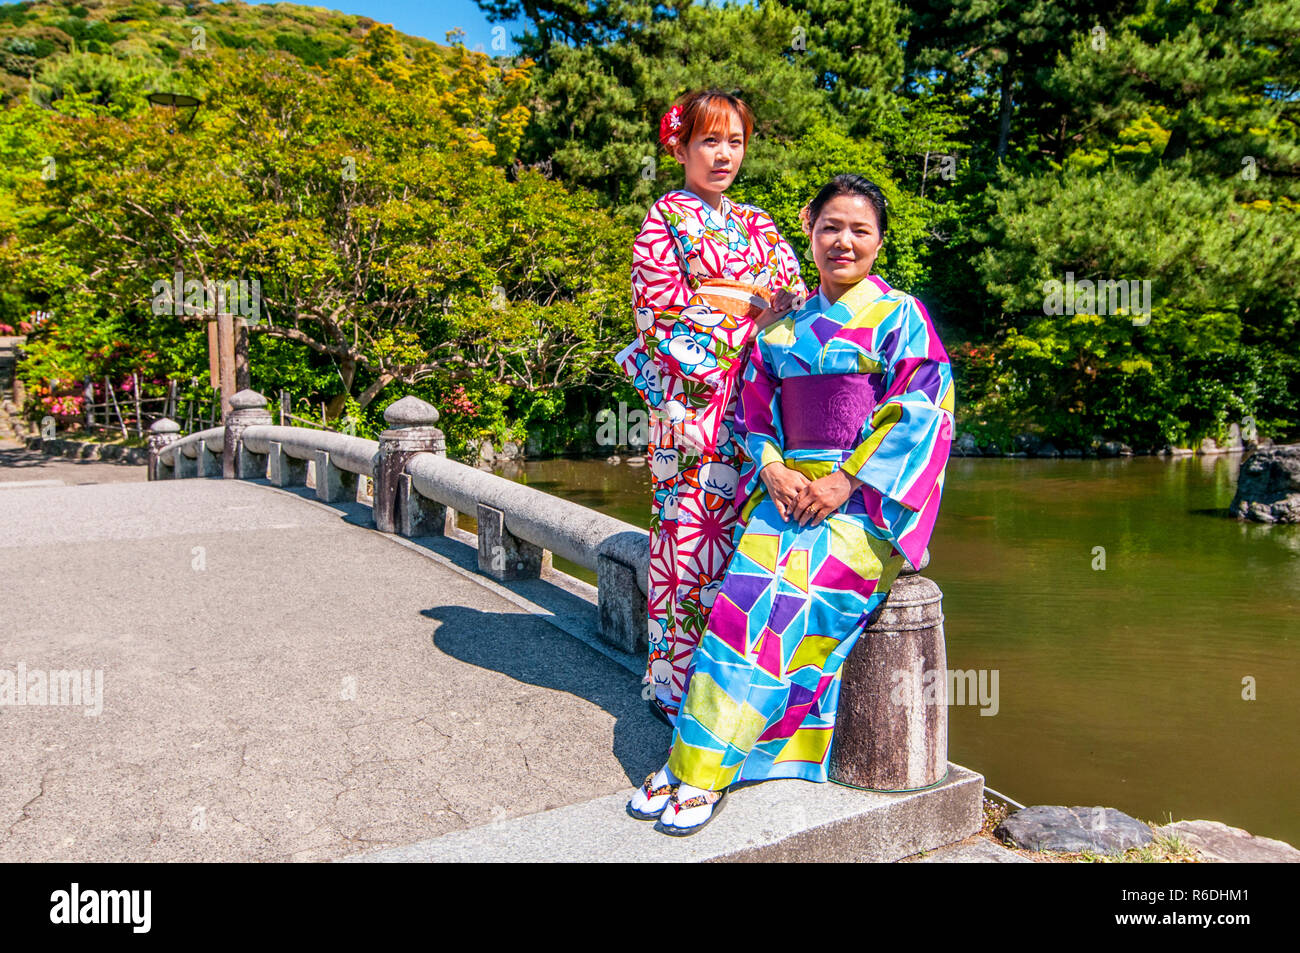 Japanese Girls With Japanese Traditional Suit (Yukata) Are Walking In The Maruyama Park Located Nearby Yasaka Shrine, Kyoto, Japan - Stock Image